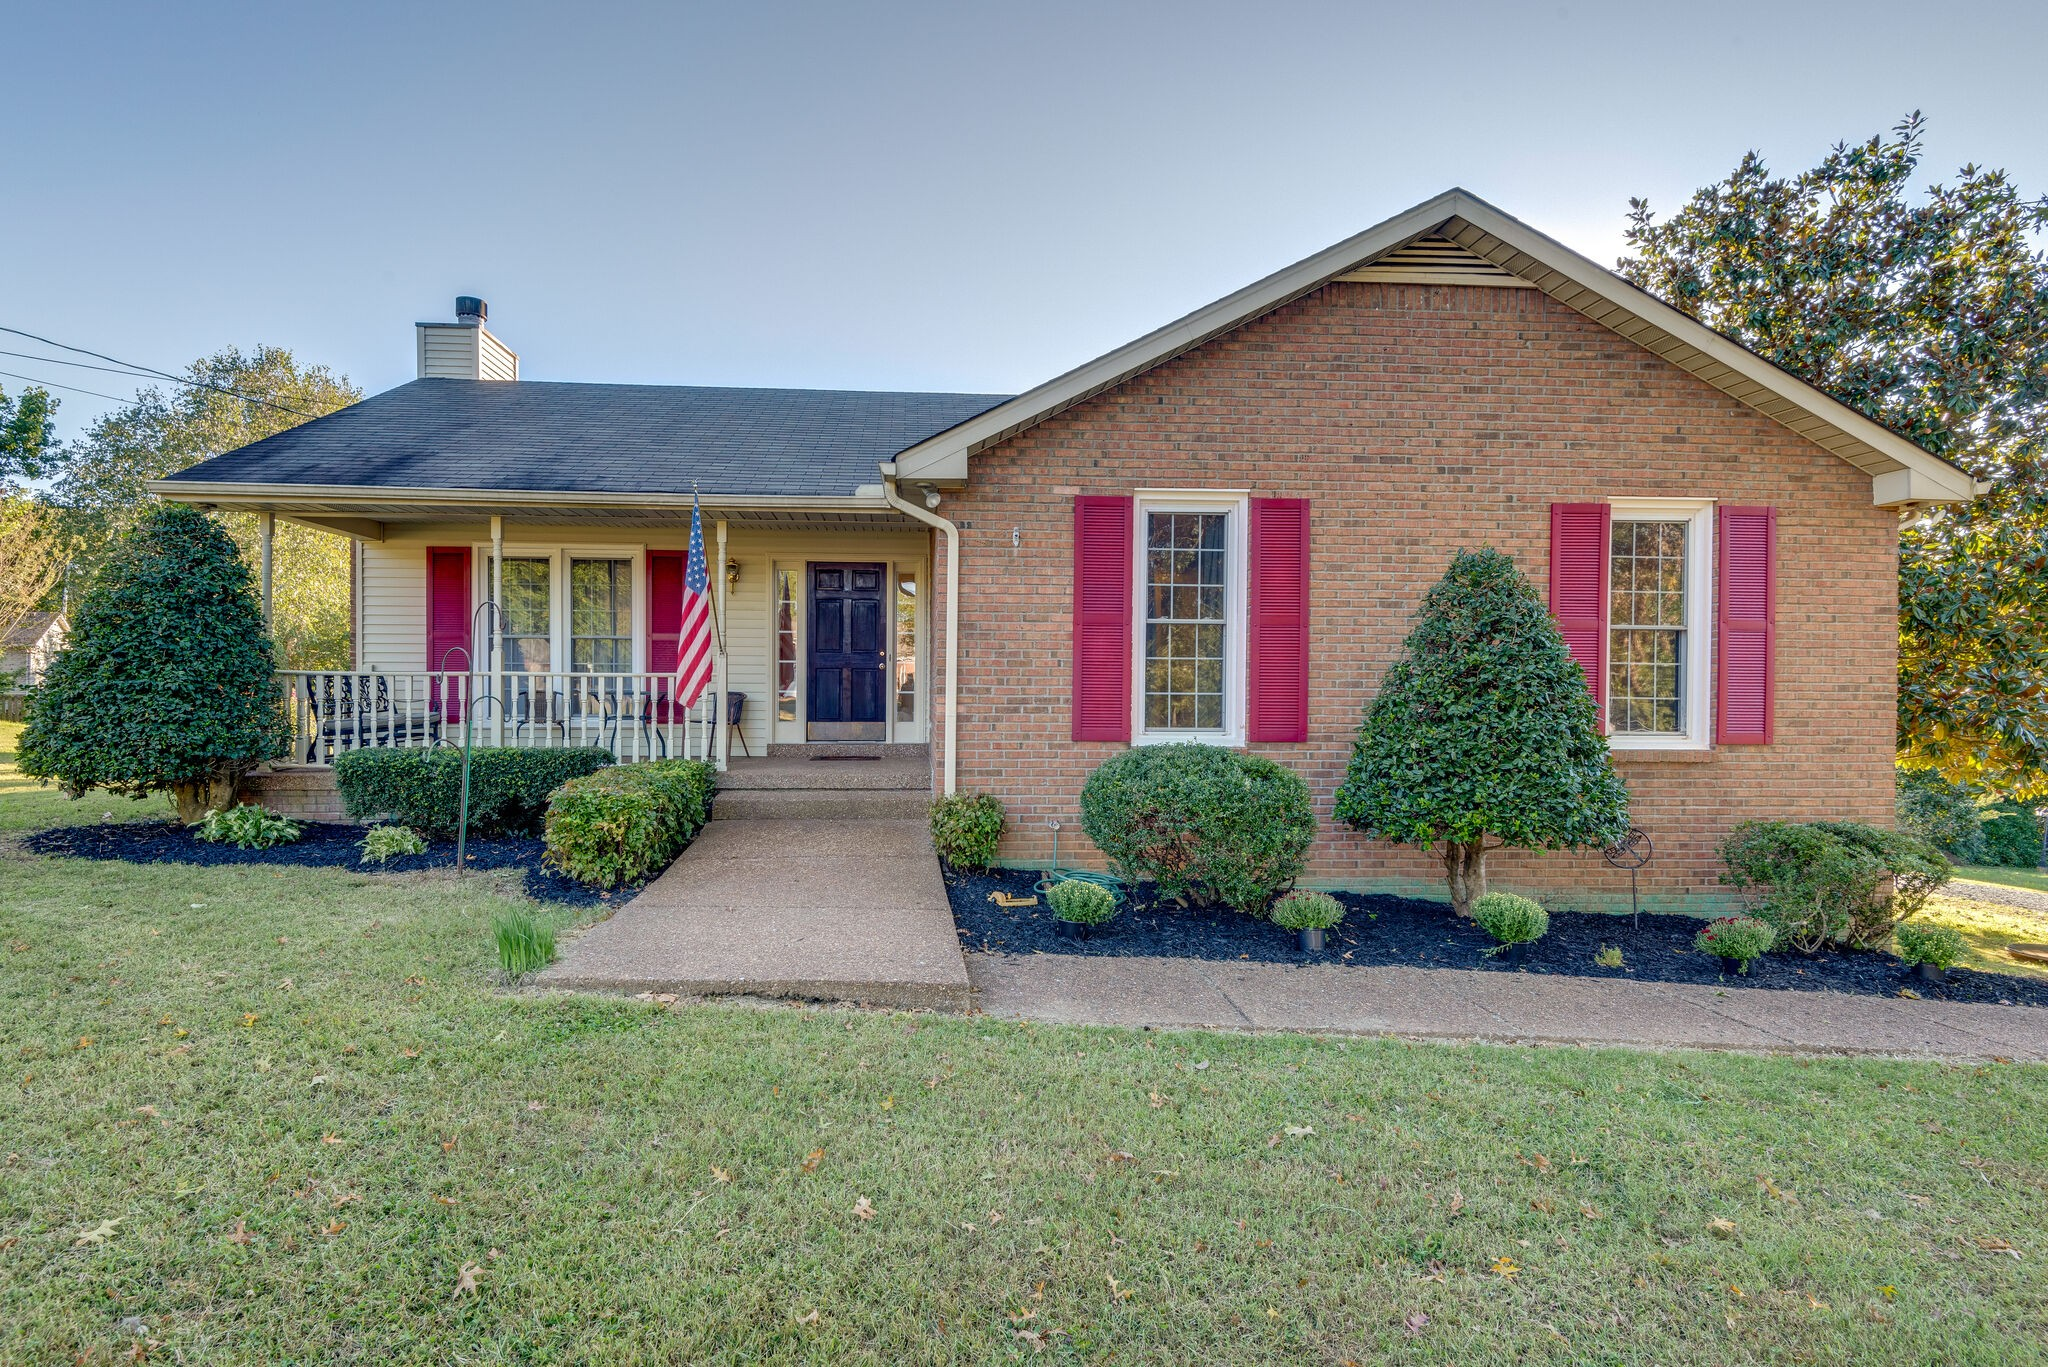 Charming 3 bed/2 bath brick home on half acre lot. Enjoy the back yard while relaxing on the back deck. This home is just minutes from Fairview City Center, easy commute to Nashville, and minutes to Bowie Nature Park. Large kitchen with a stove and dishwasher that are only 6 months old. Partially finished basement features a room w/ closet. Don't miss out on this lovely home.